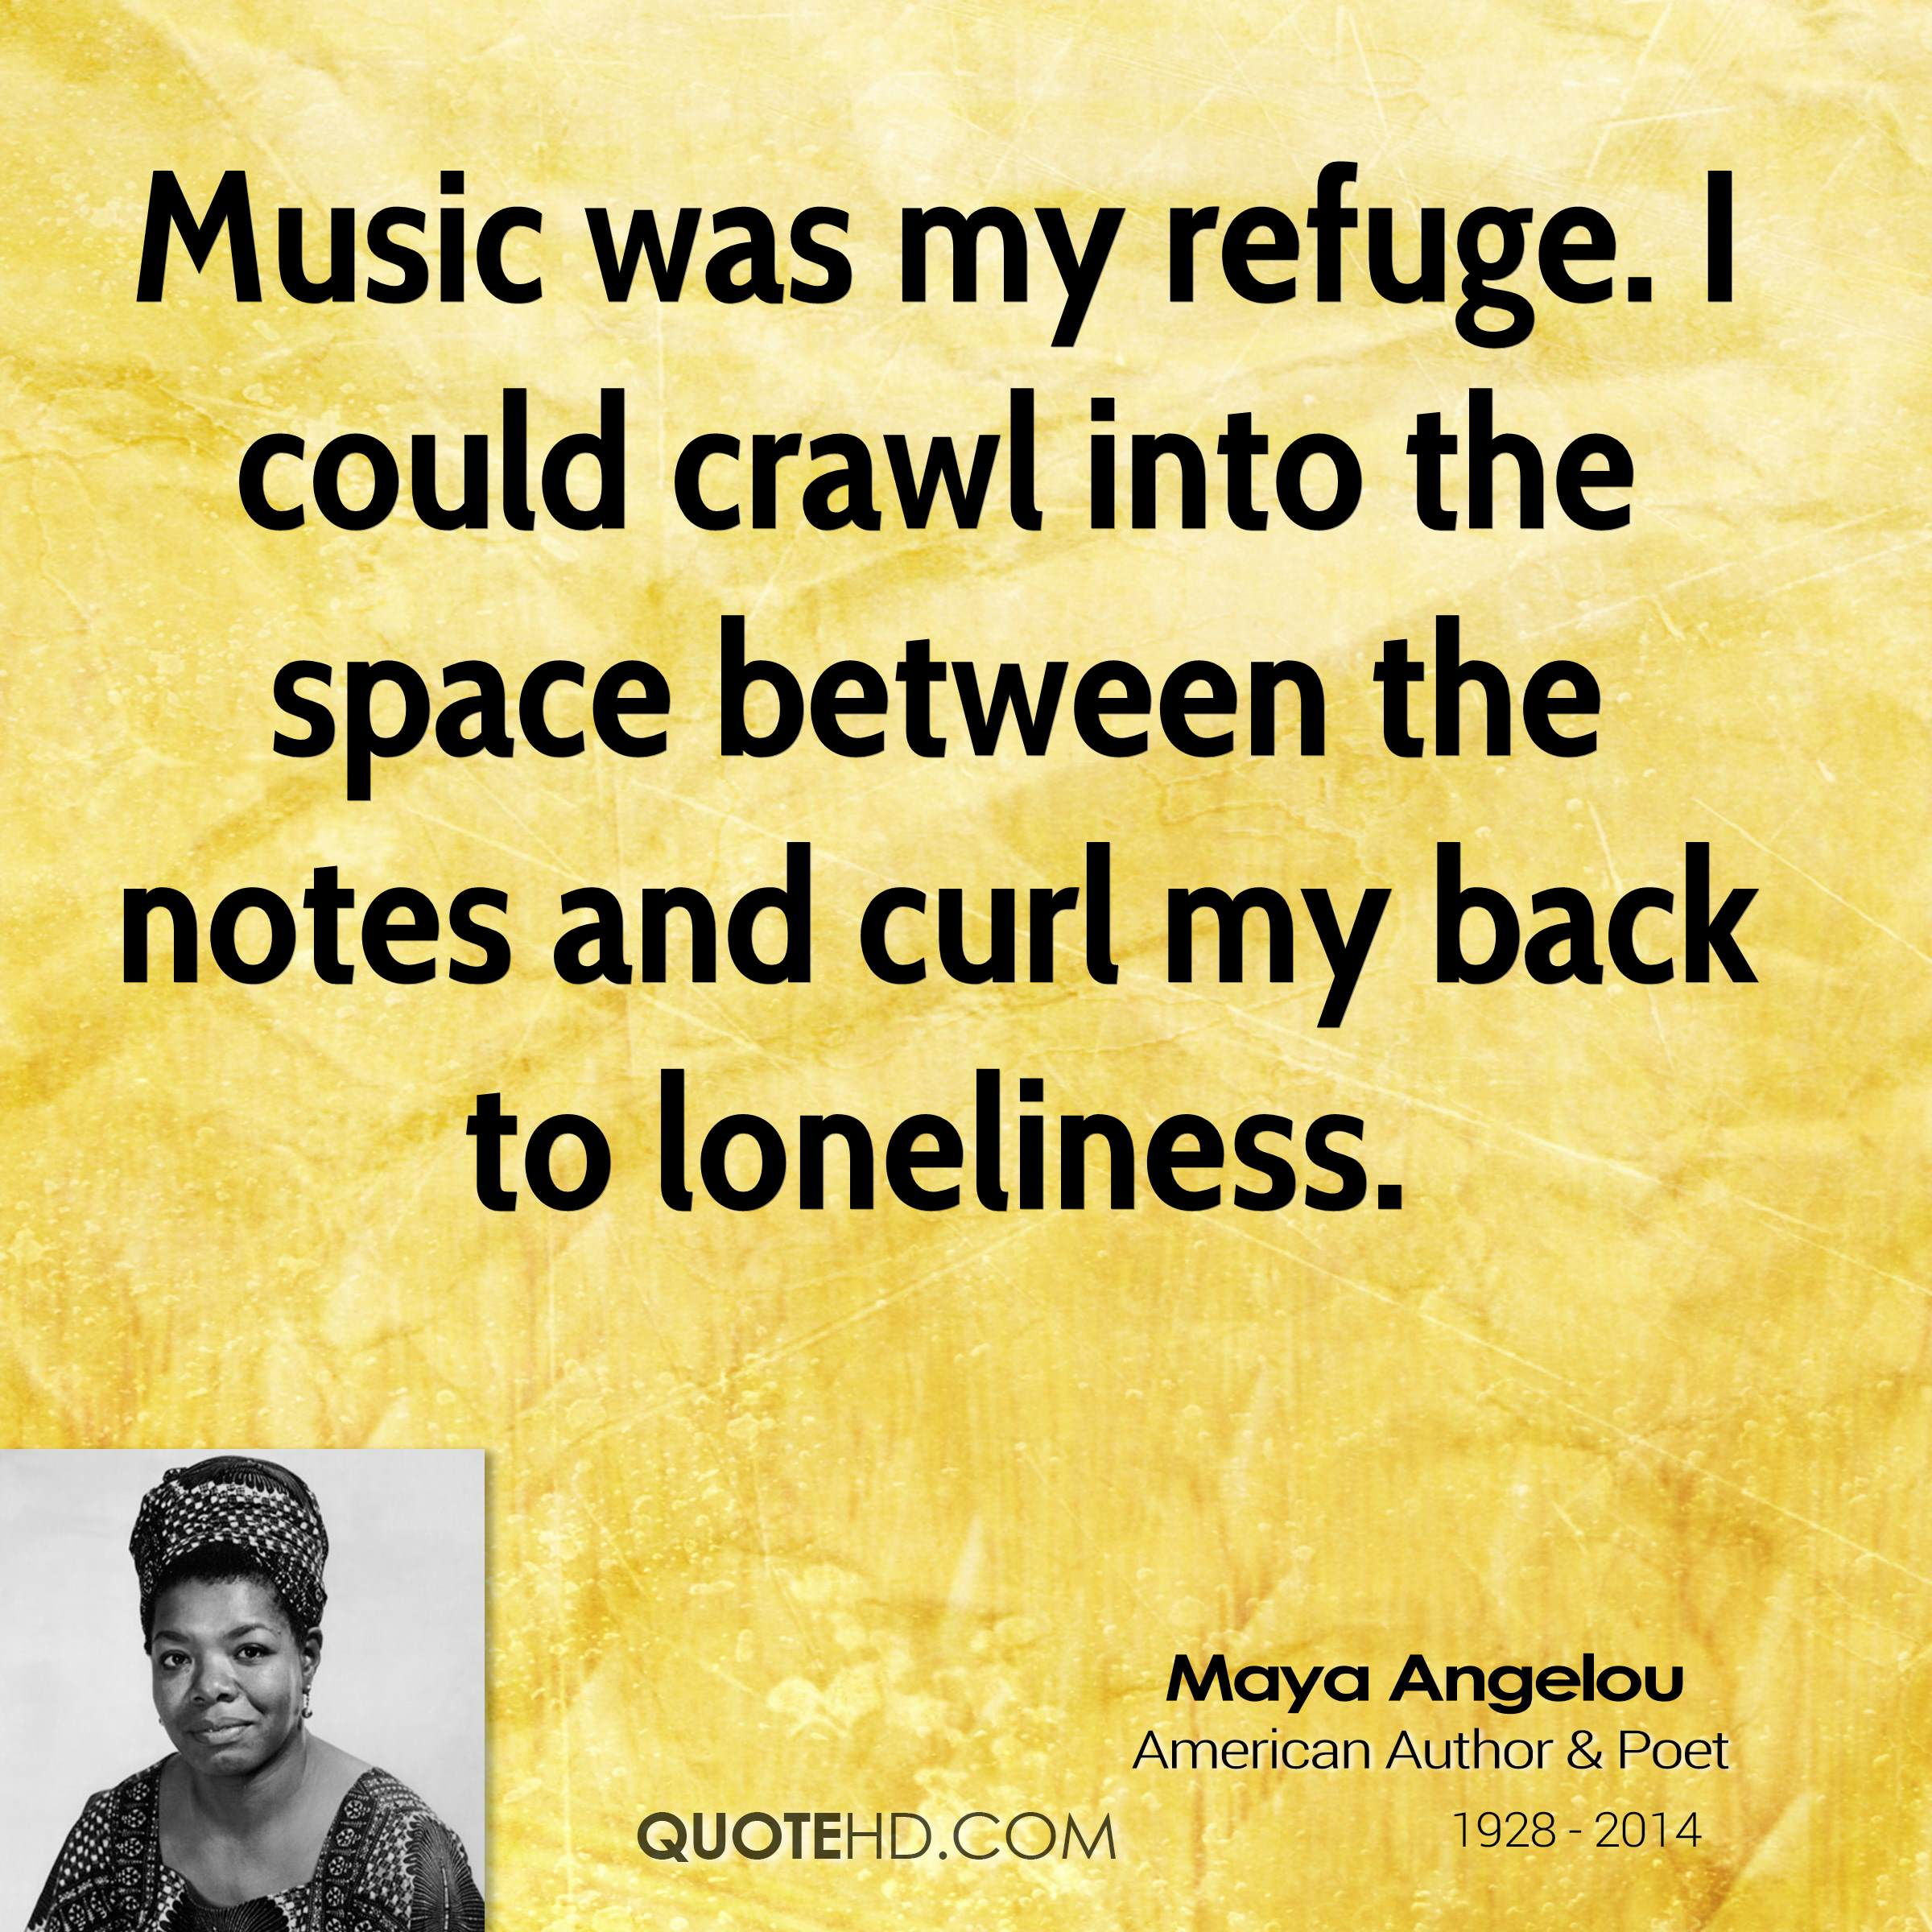 Music was my refuge. I could crawl into the space between the notes and curl my back to loneliness.